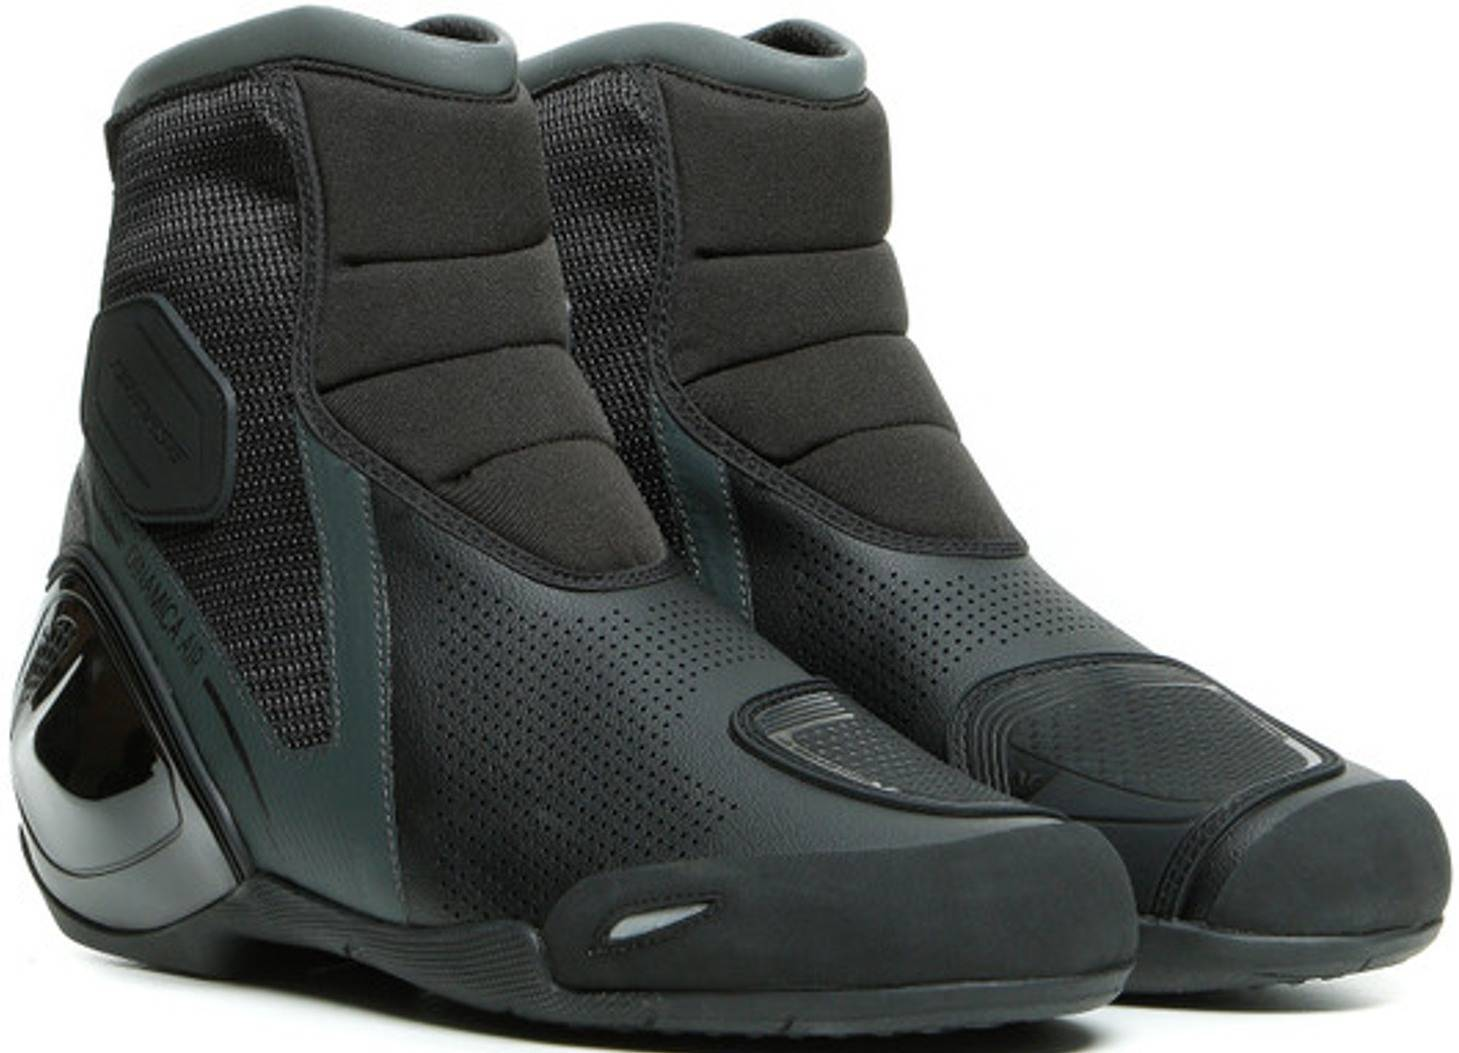 Dainese Dinamica Air Motorcycle Shoes  - Size: 43